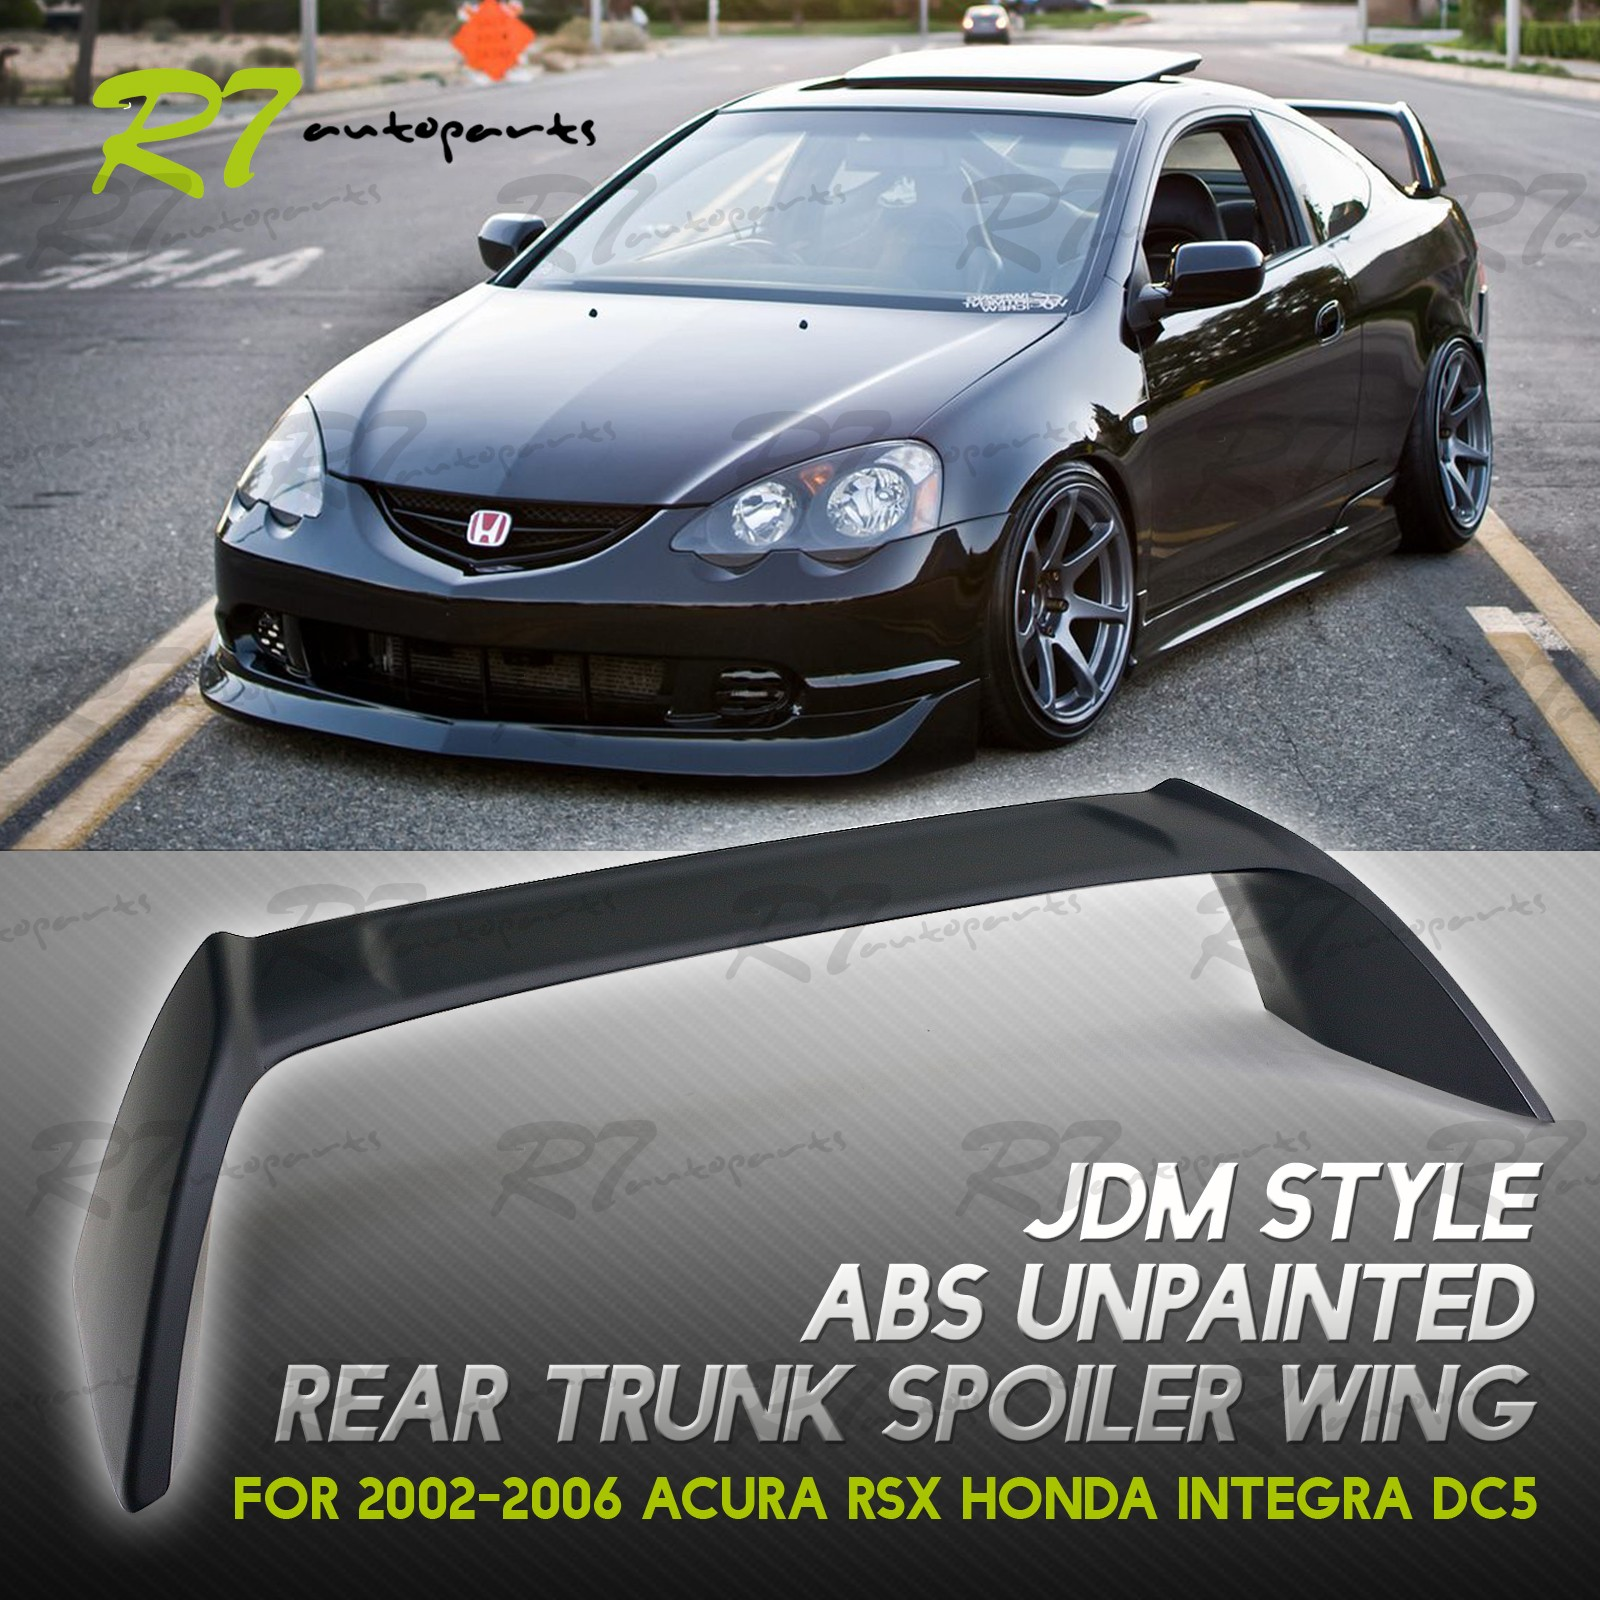 FOR 02-06 ACURA RSX DC5 JDM ABS MATTE BLACK TYPE-R STYL